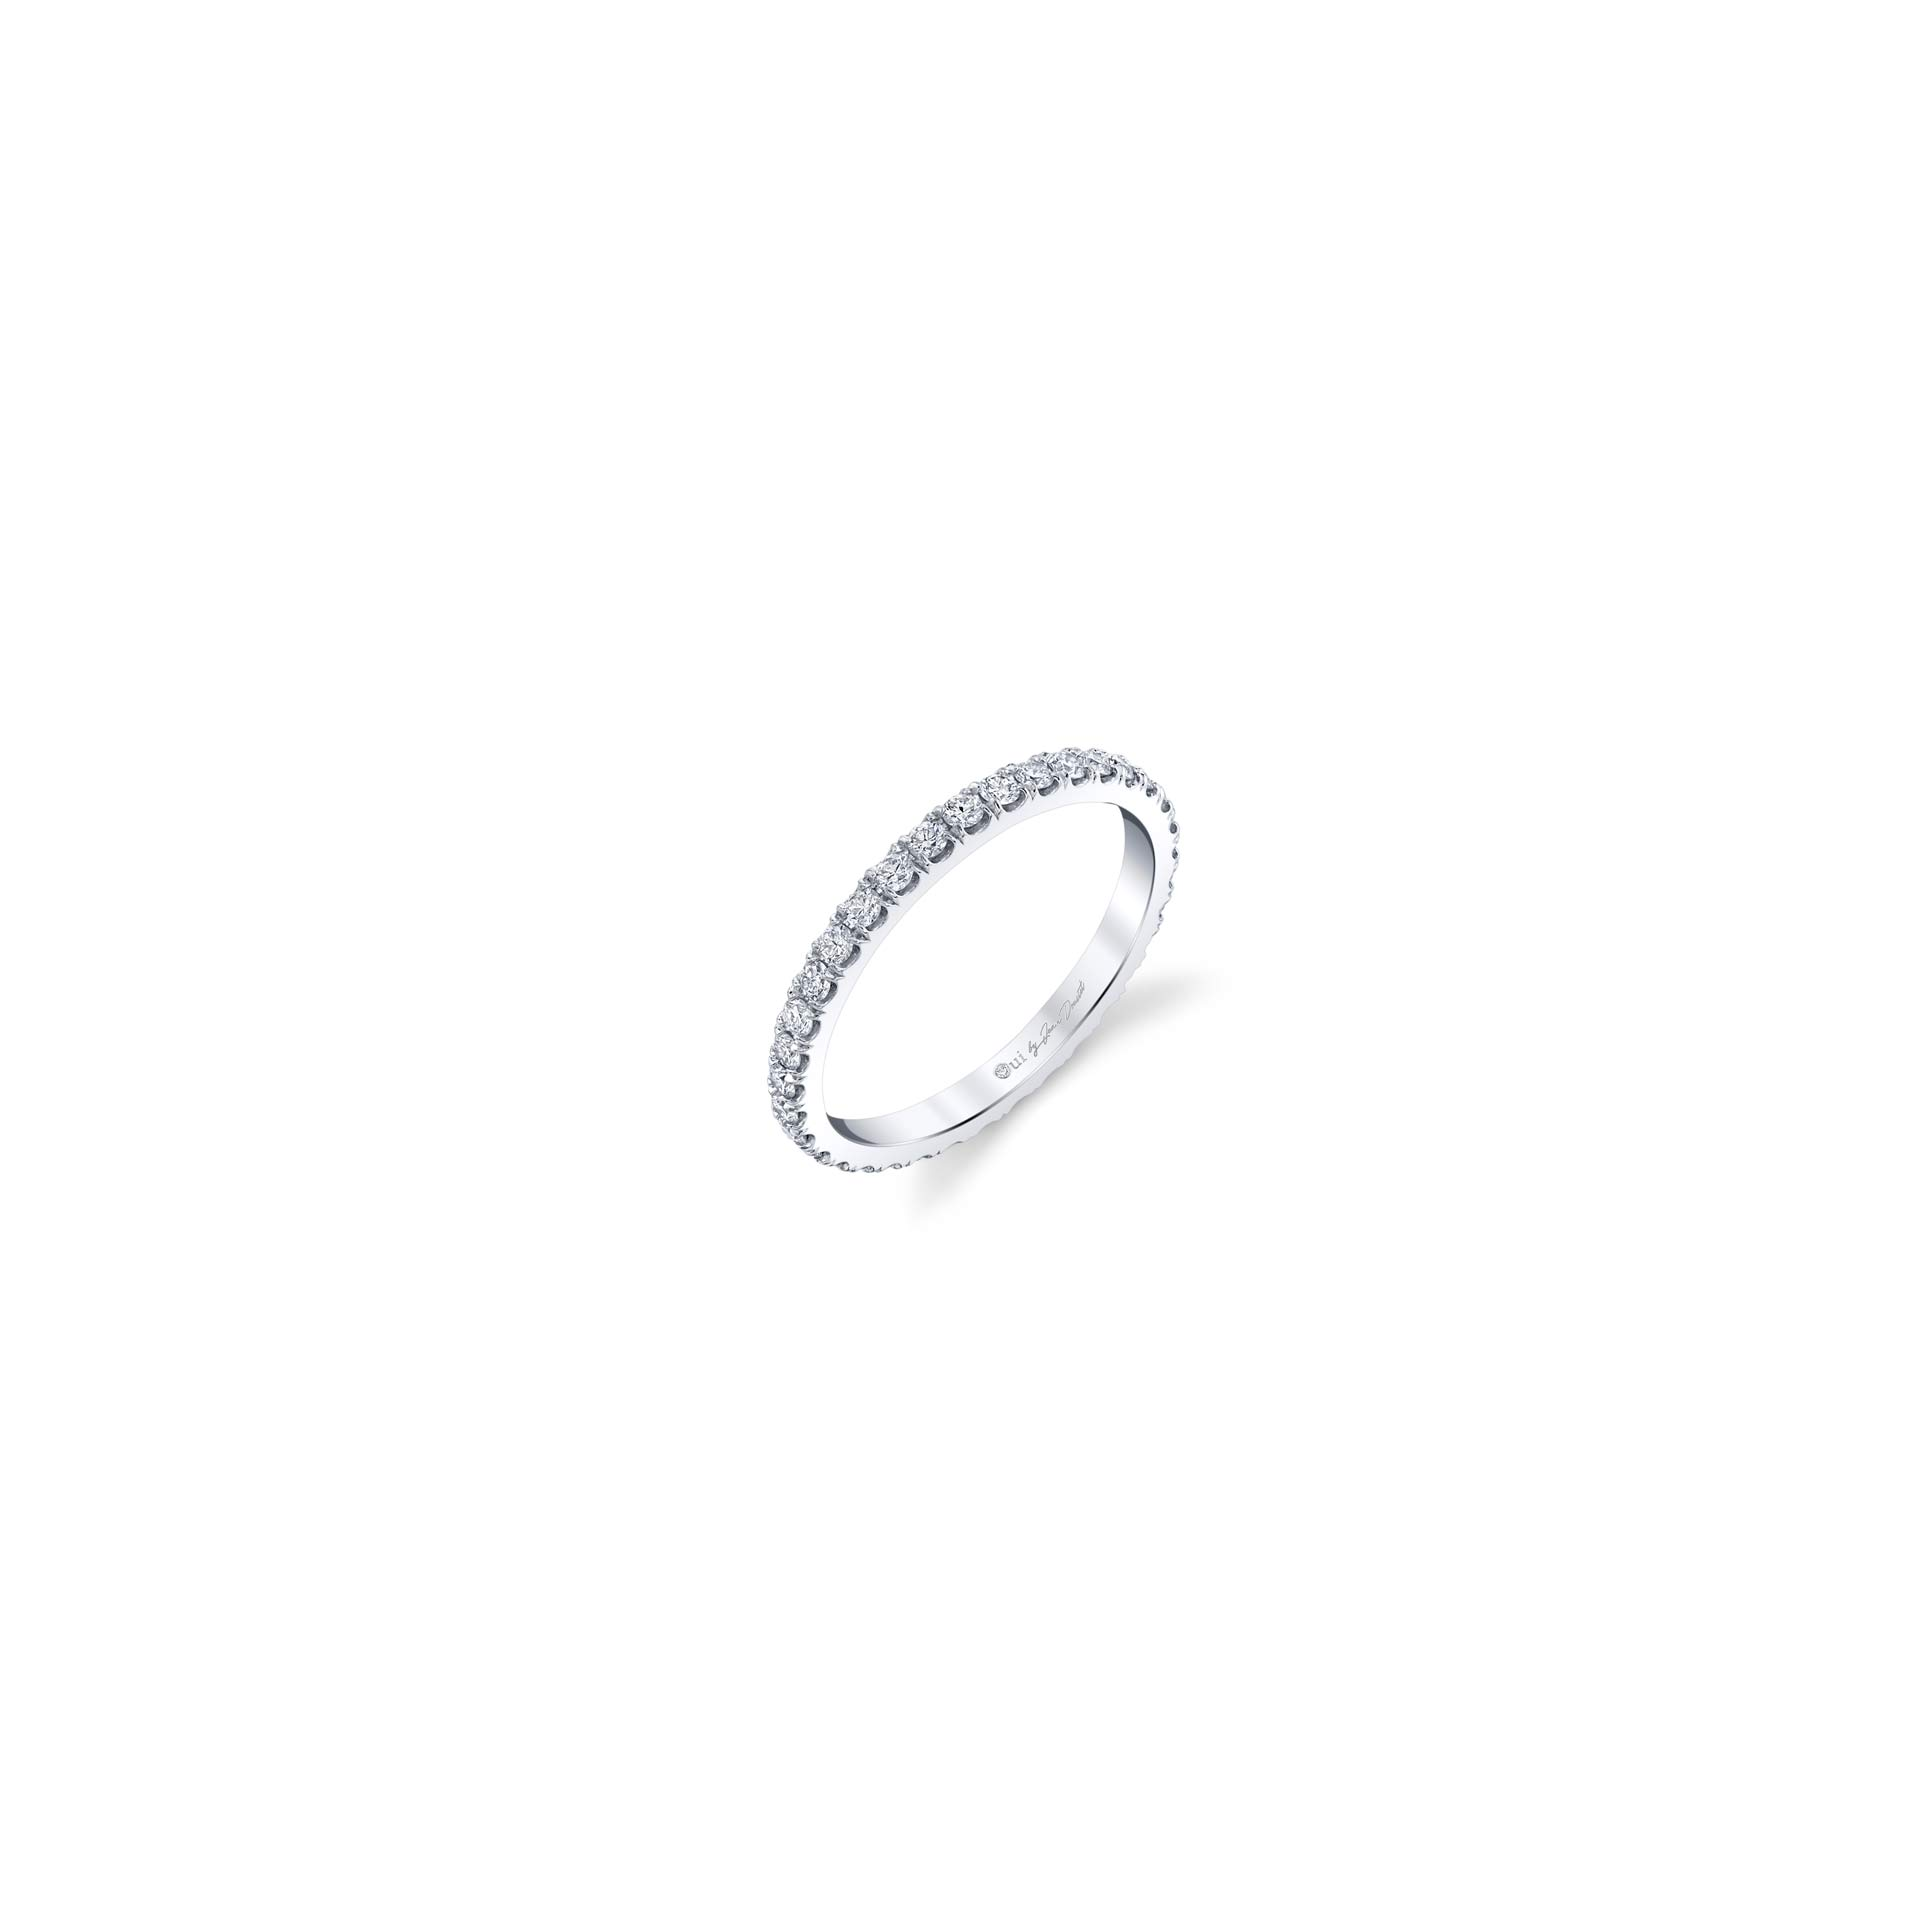 Eloise Women's Wedding Band with diamond pavé in 18k White Gold Standing View by Oui by Jean Dousset